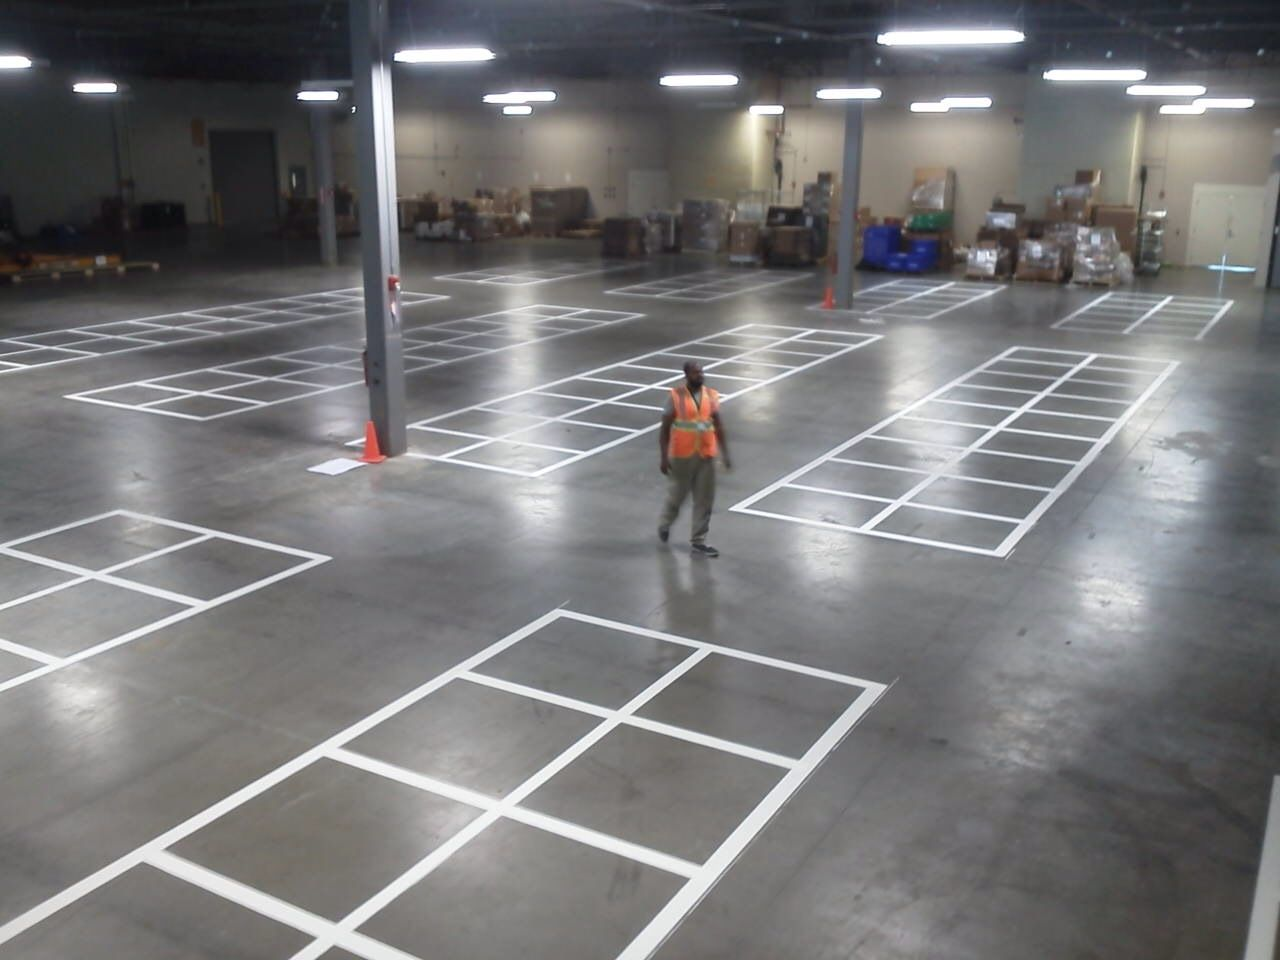 More warehouse striping in the form of a pallet staging